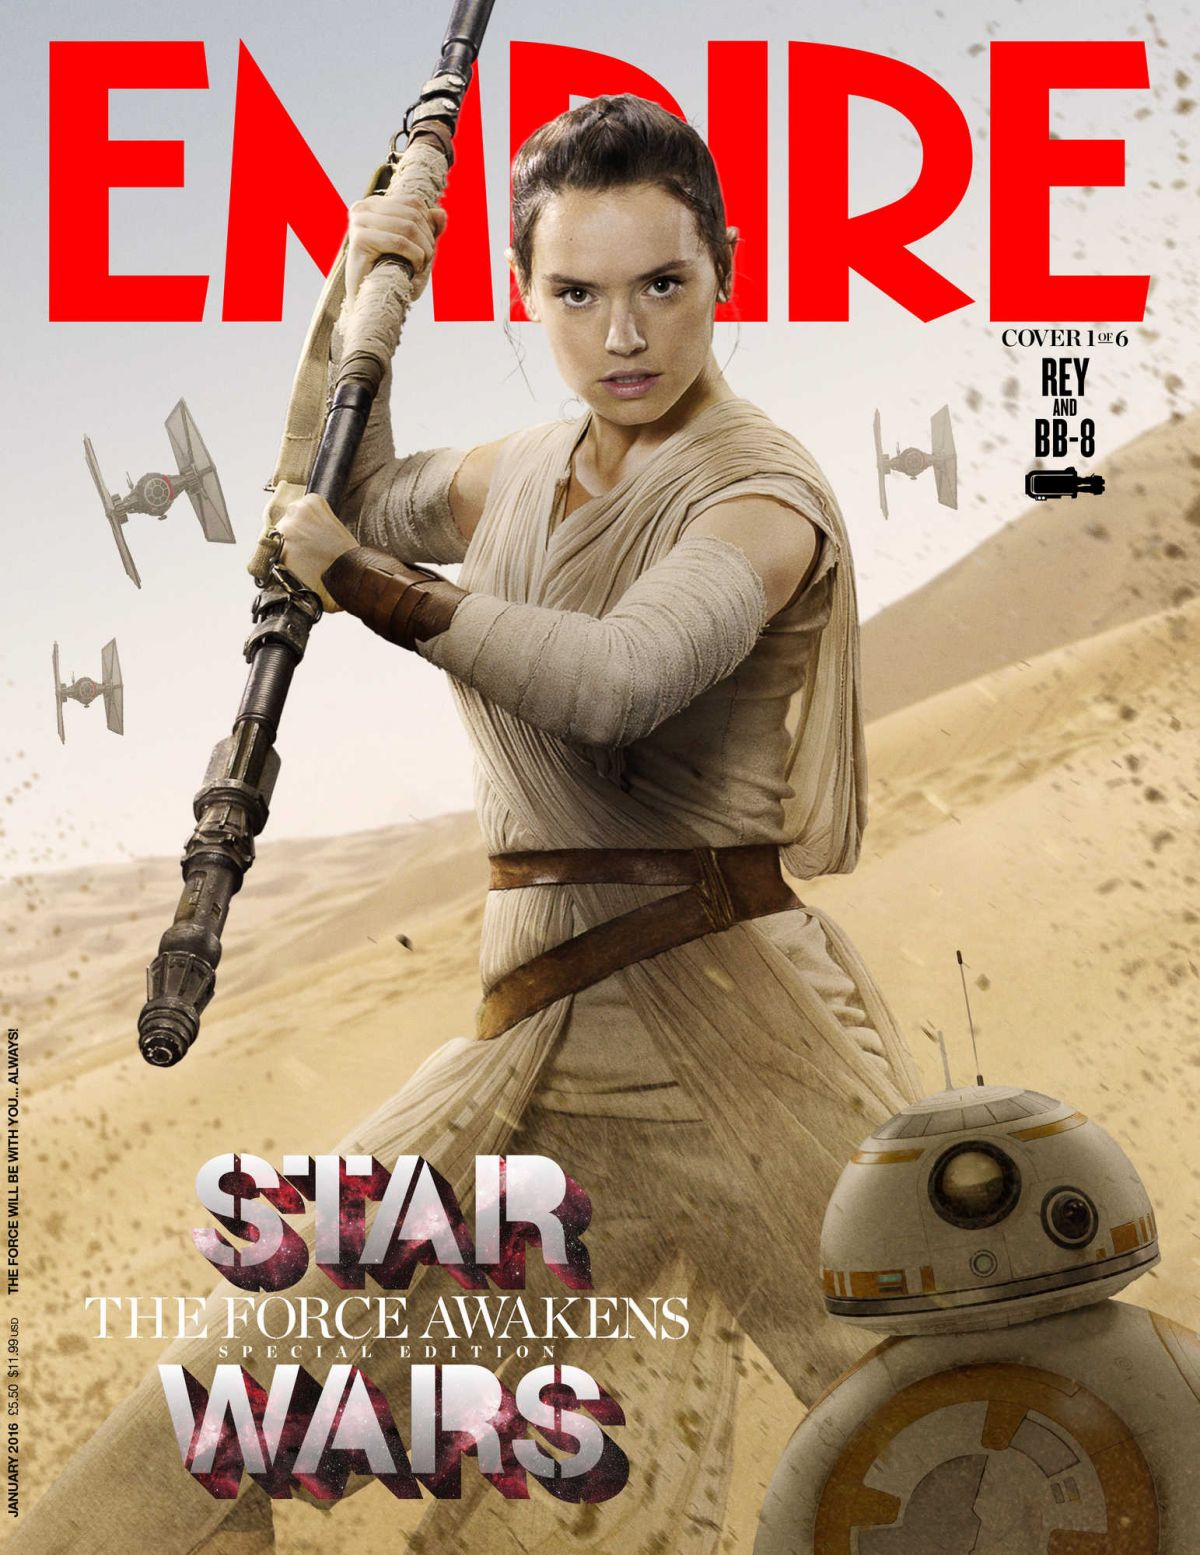 DAISY RIDLEY on the Cover of Empire Magazine, January 2016 Issue